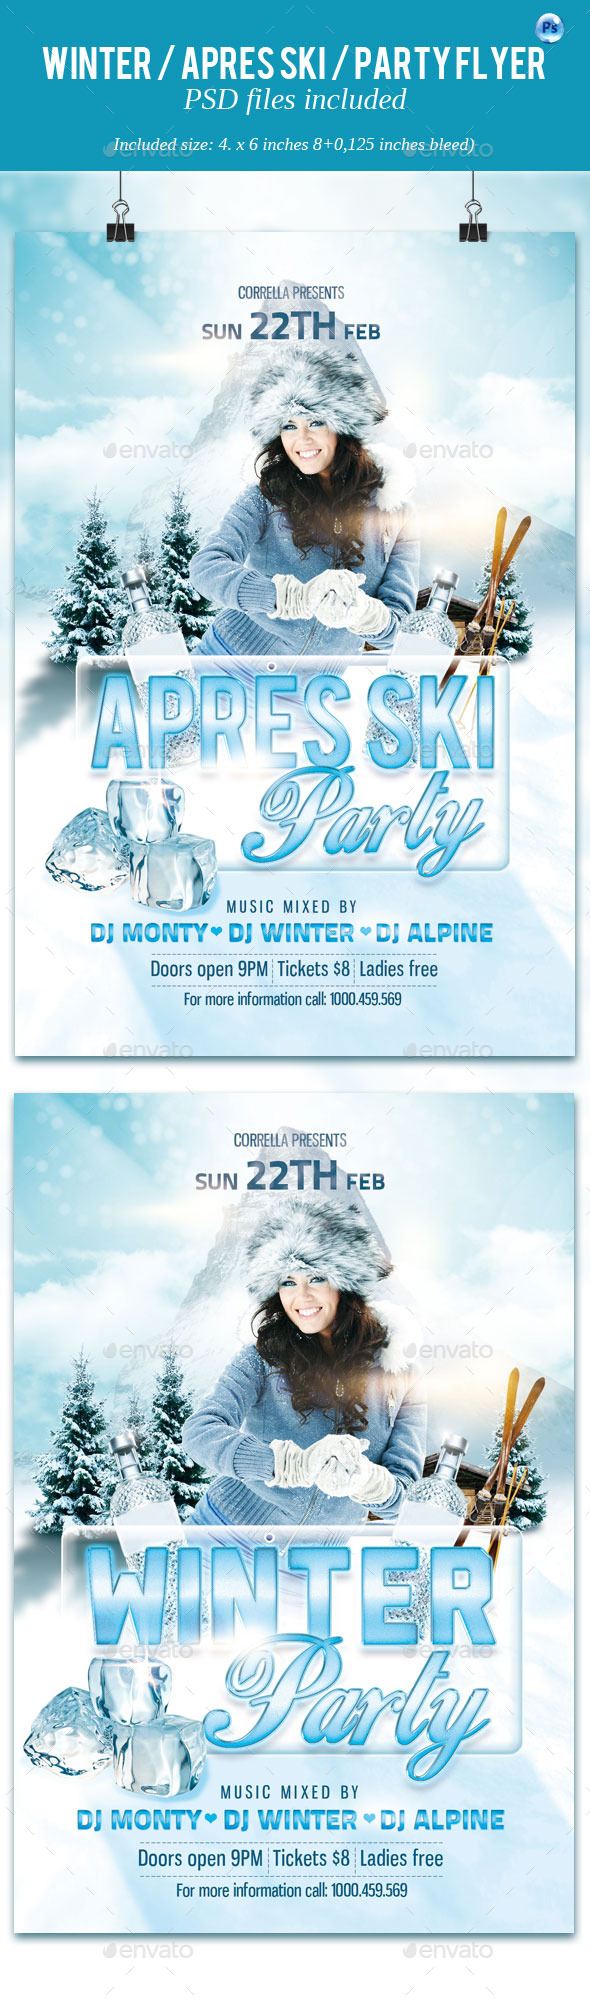 GraphicRiver Winter Apres Ski Party Flyer 10314551